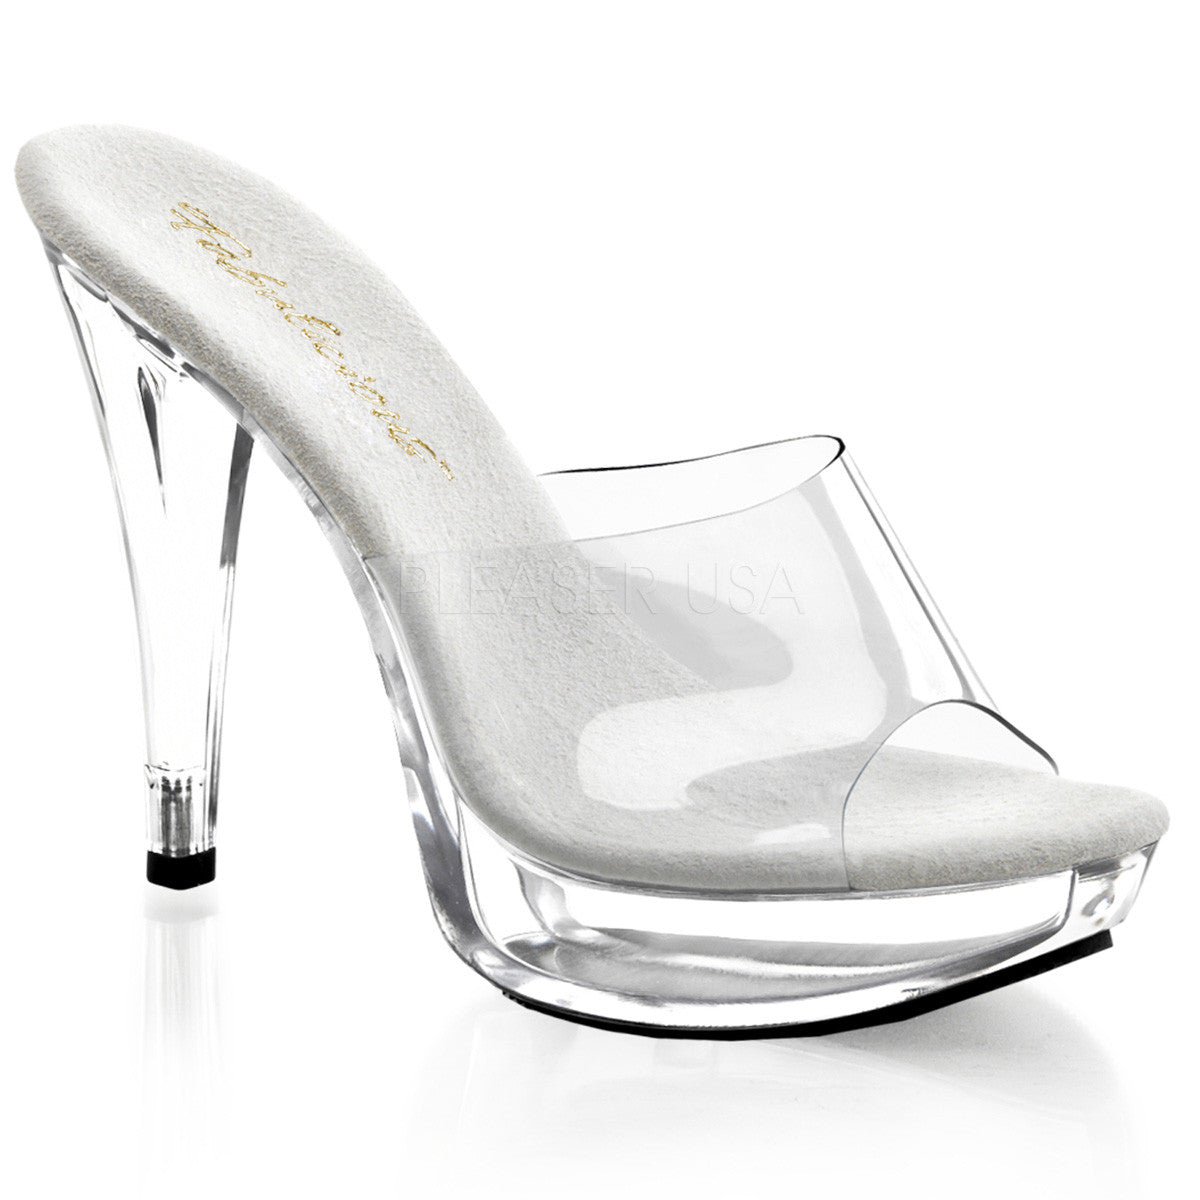 Fabulicious,FABULICIOUS COCKTAIL-501 Clear-Clear Platform Slides - Shoecup.com